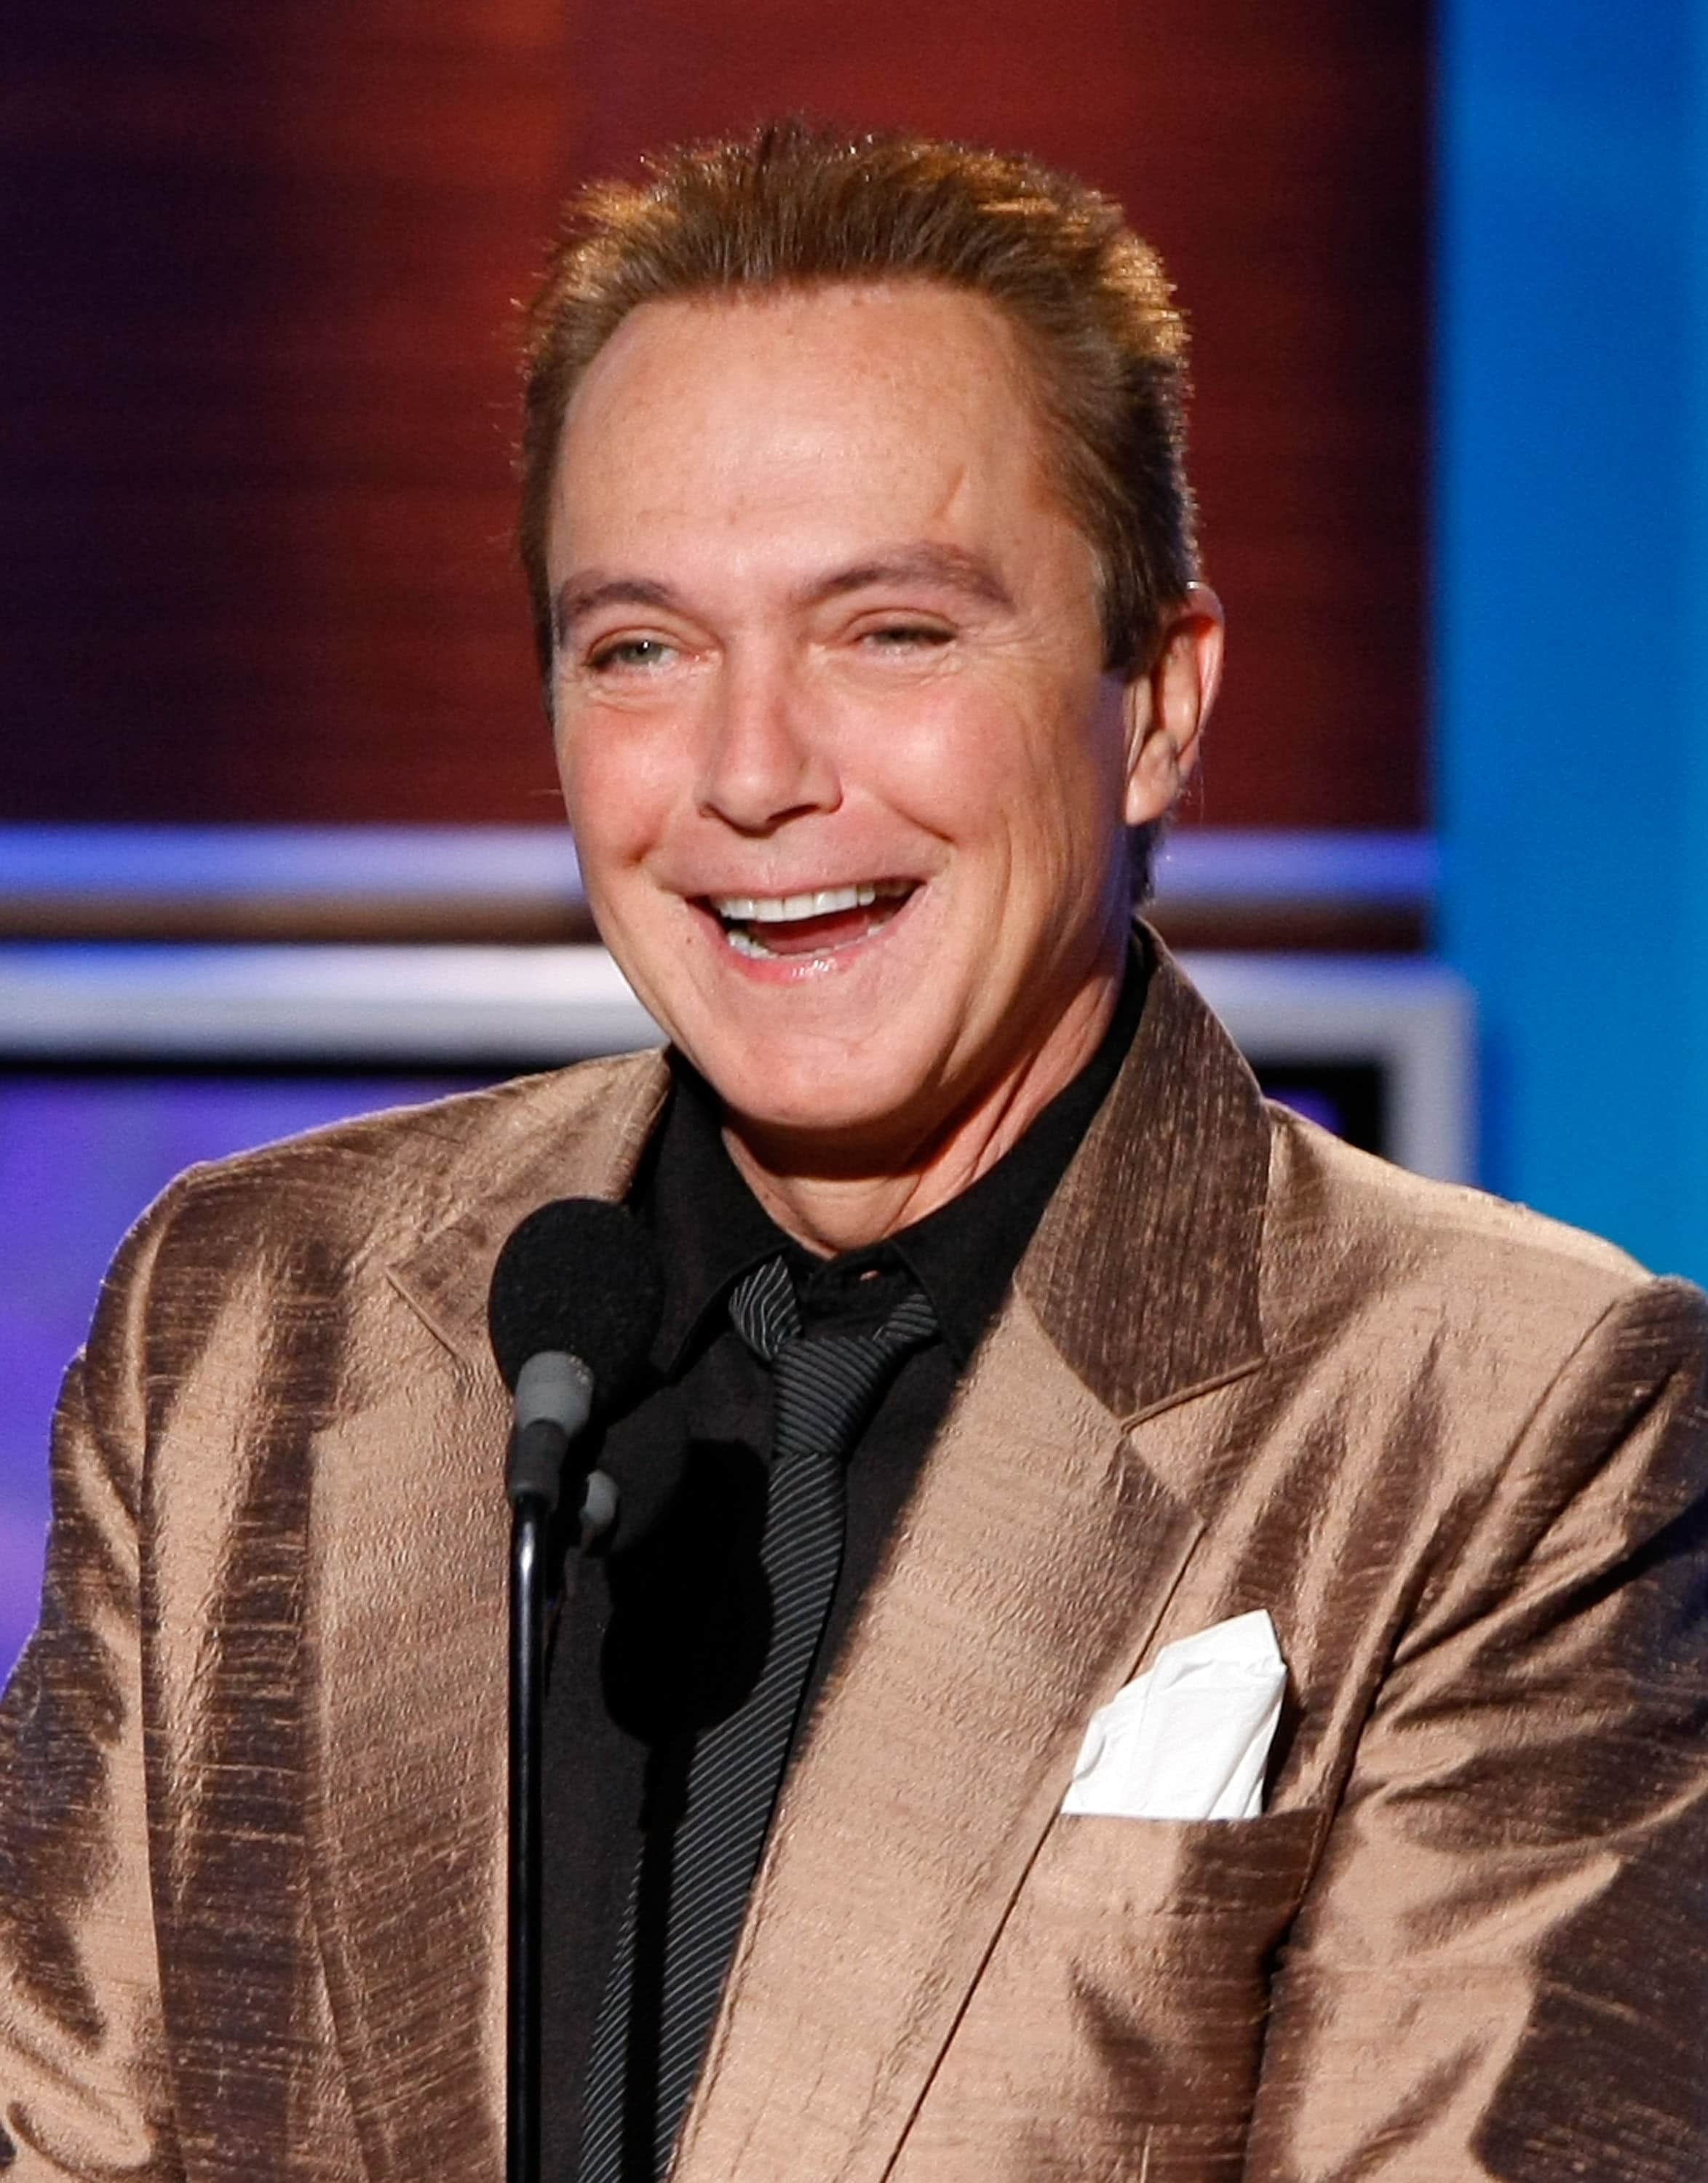 David Cassidy passed away after a series of health struggles in Florida in November 2017 (Getty)